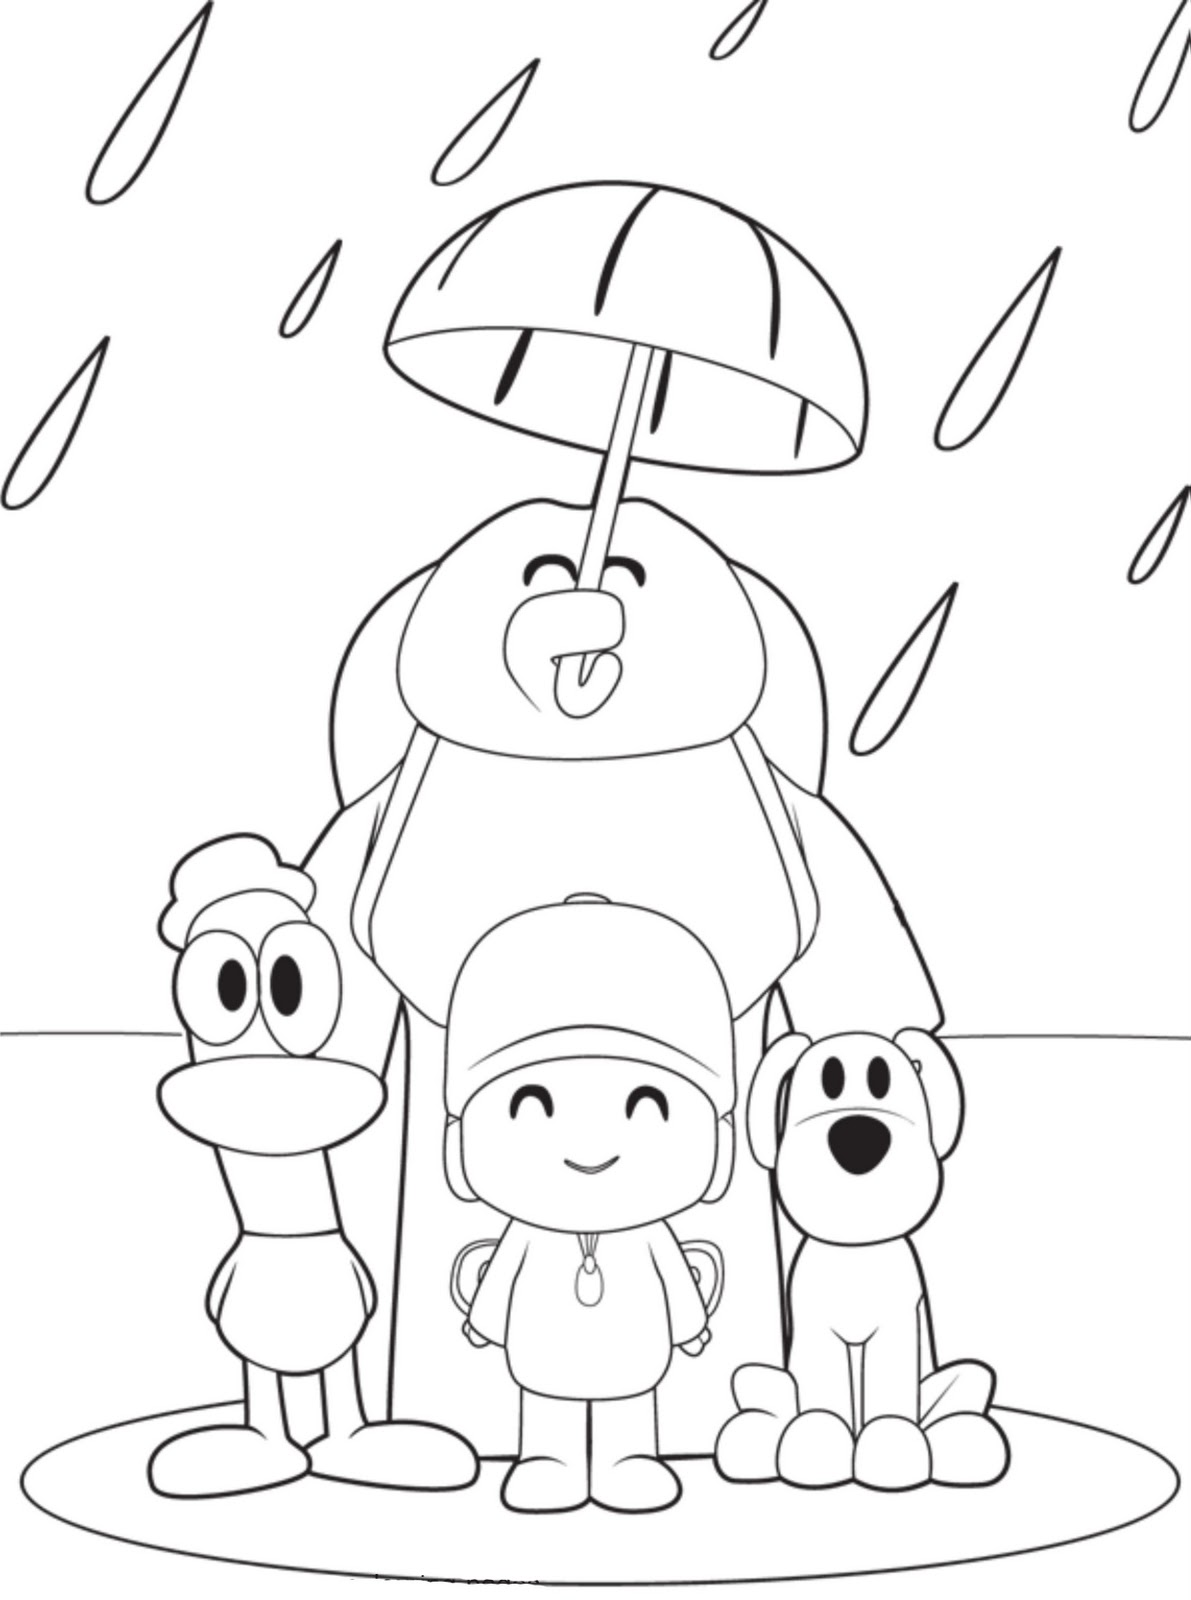 pocoyo coloring pages - photo#8